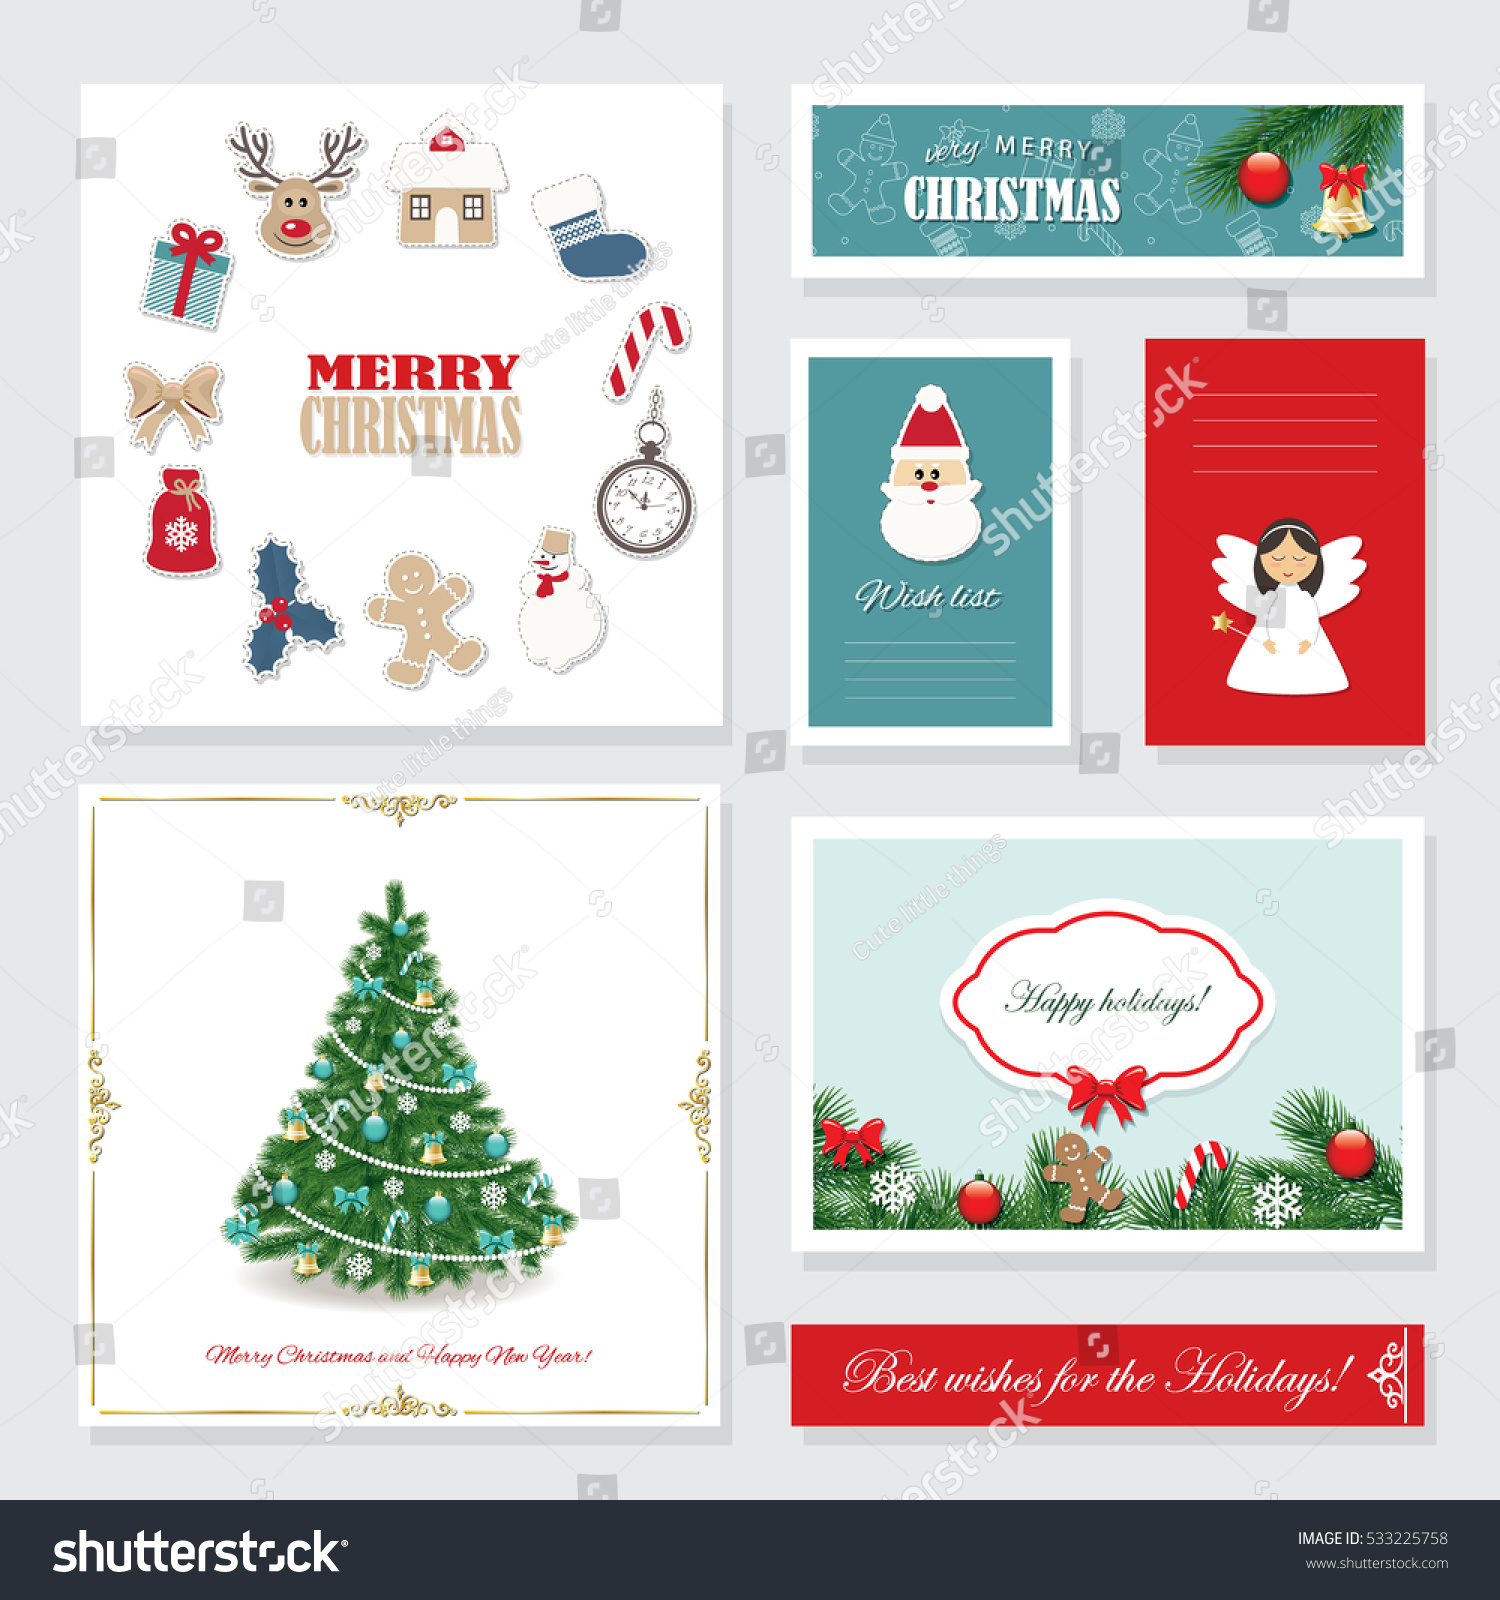 templates for christmas cards